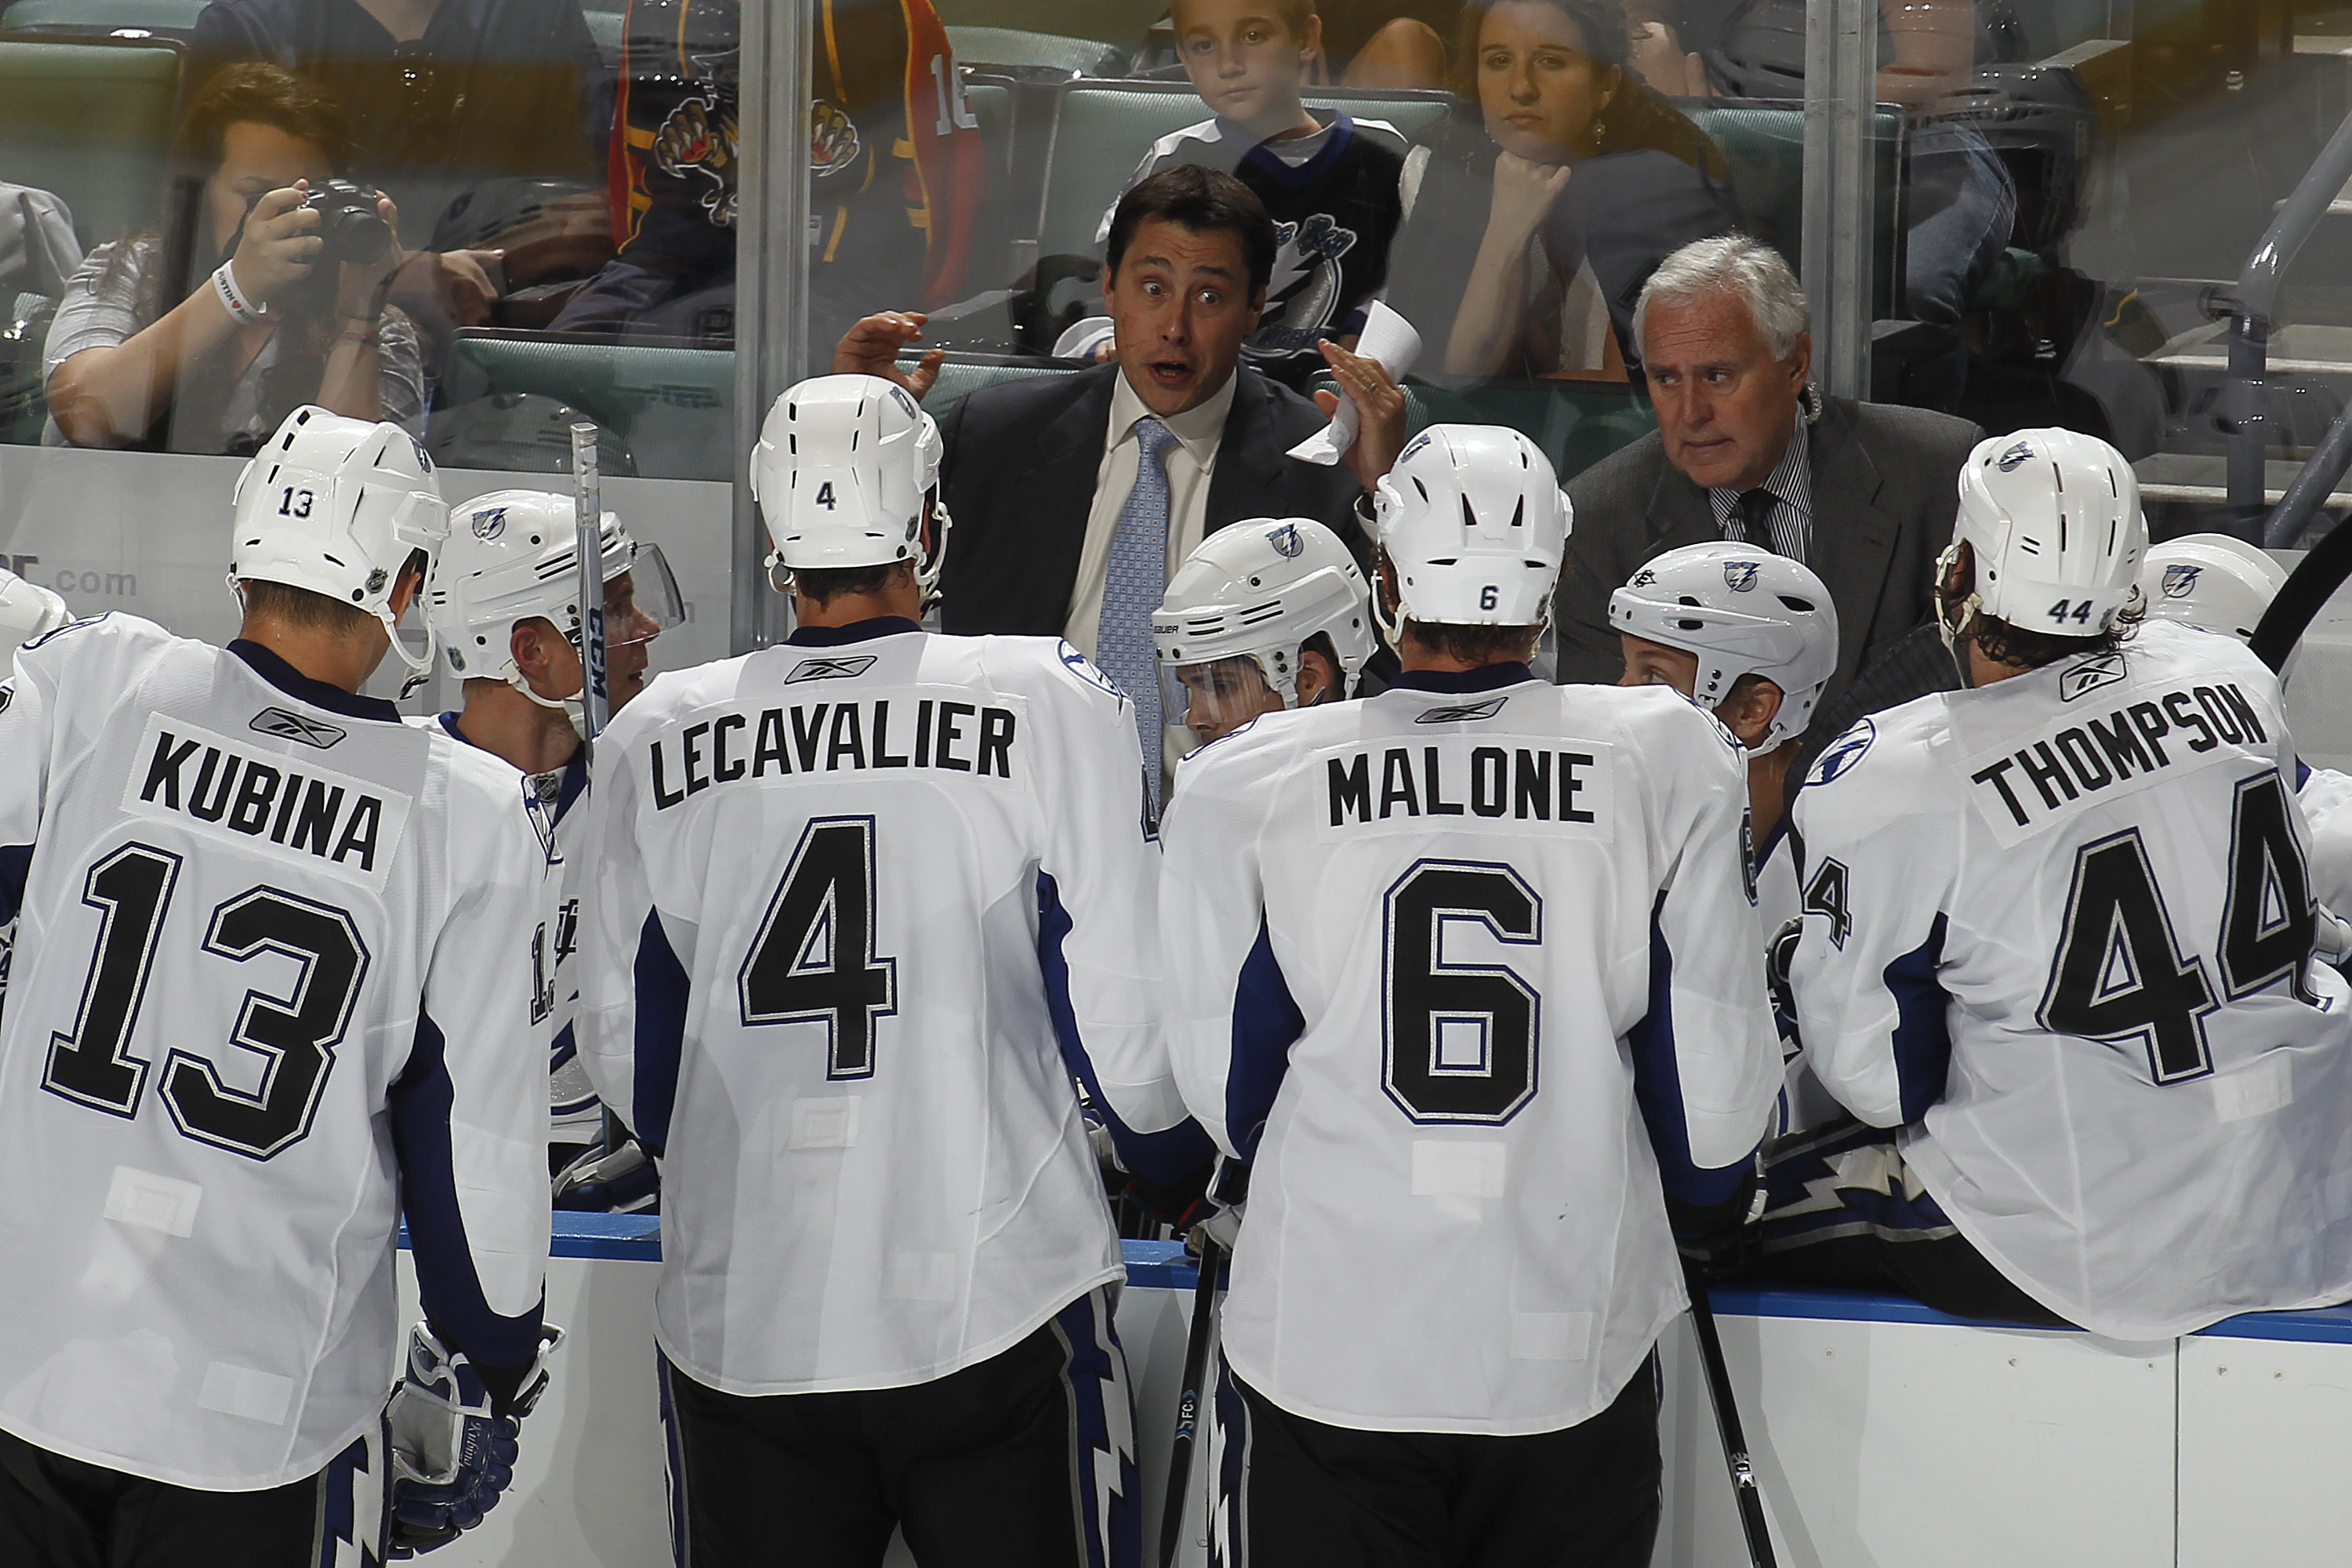 SUNRISE, FL - OCTOBER 1: Head coach Guy Boucher of the Tampa Bay Lightning talks to the team during a time out against the Florida Panthers during a preseason game on October 1, 2010 at the BankAtlantic Center in Sunrise, Florida. The Lightning defeated t